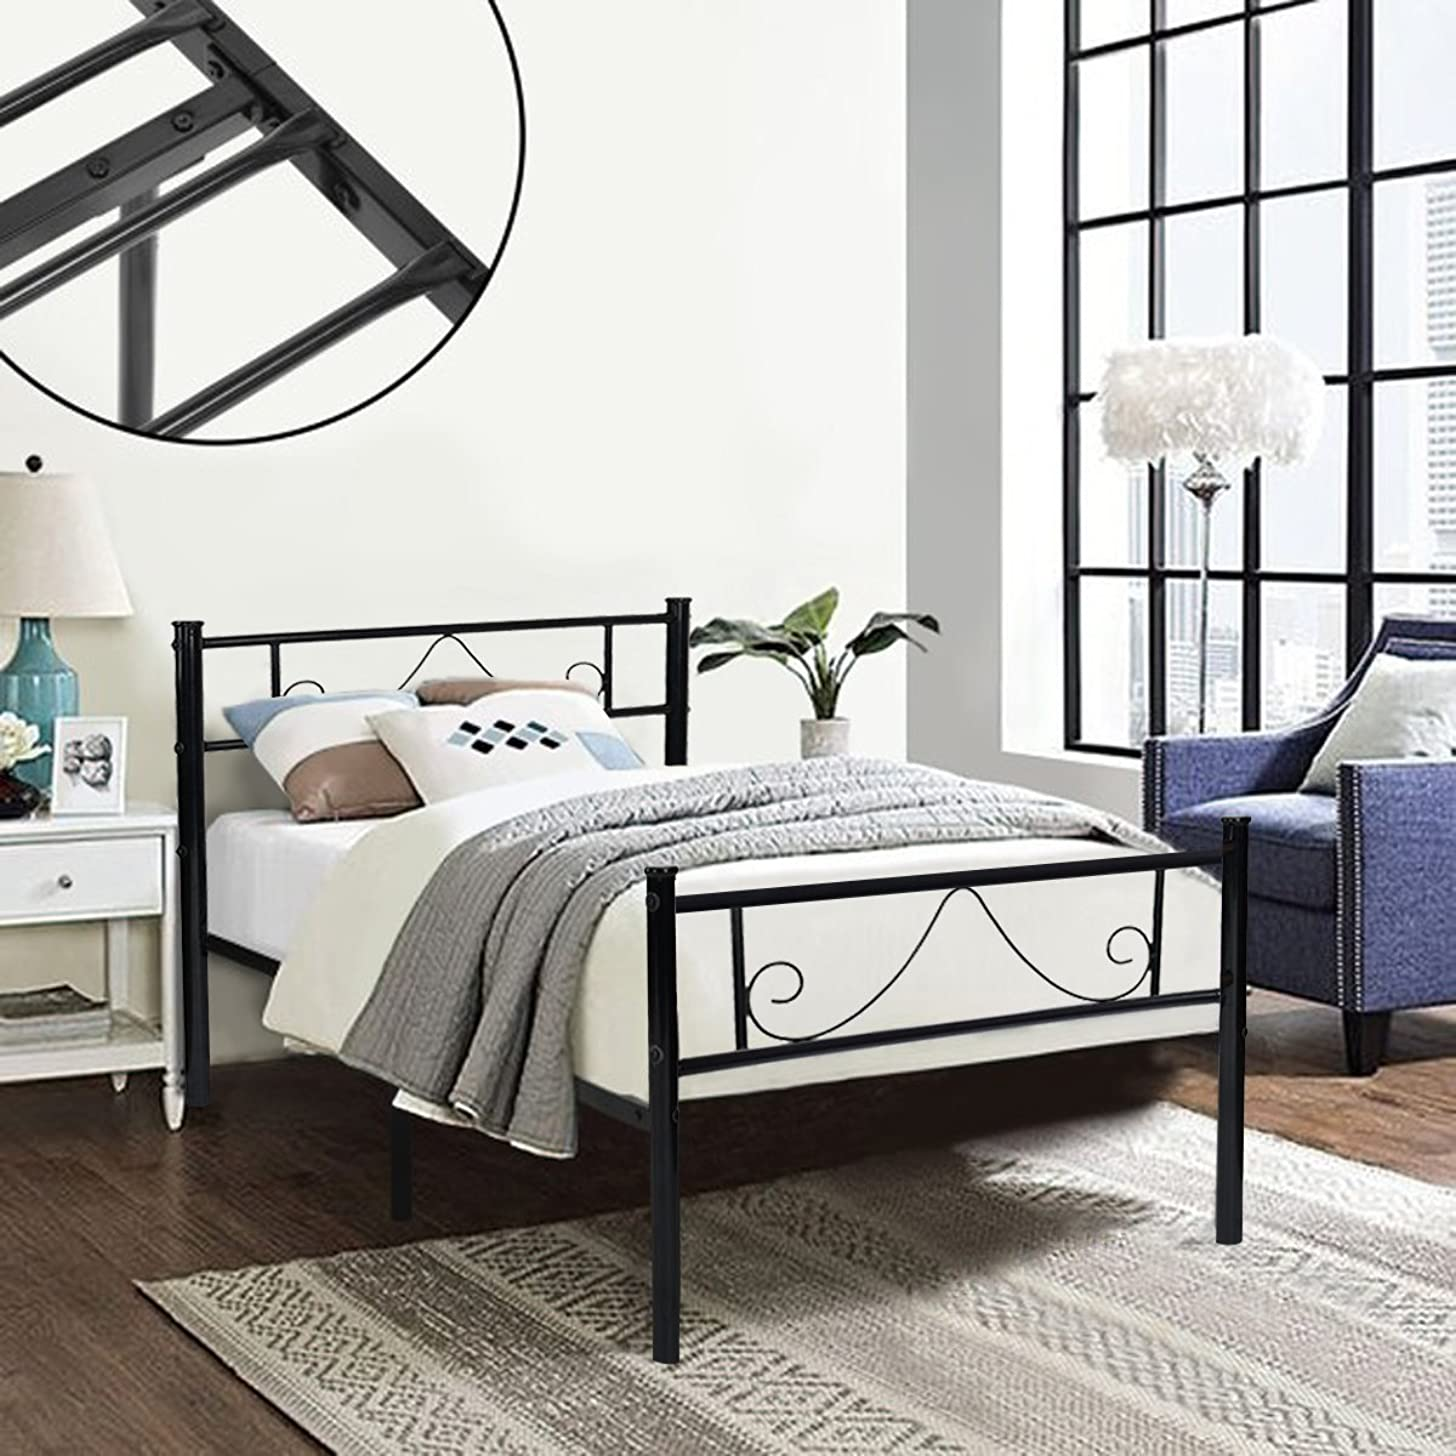 GreenForest Twin Bed Frame Metal Platform with Stable Metal Slats Stable Headboard and Footboard/Black,Twin